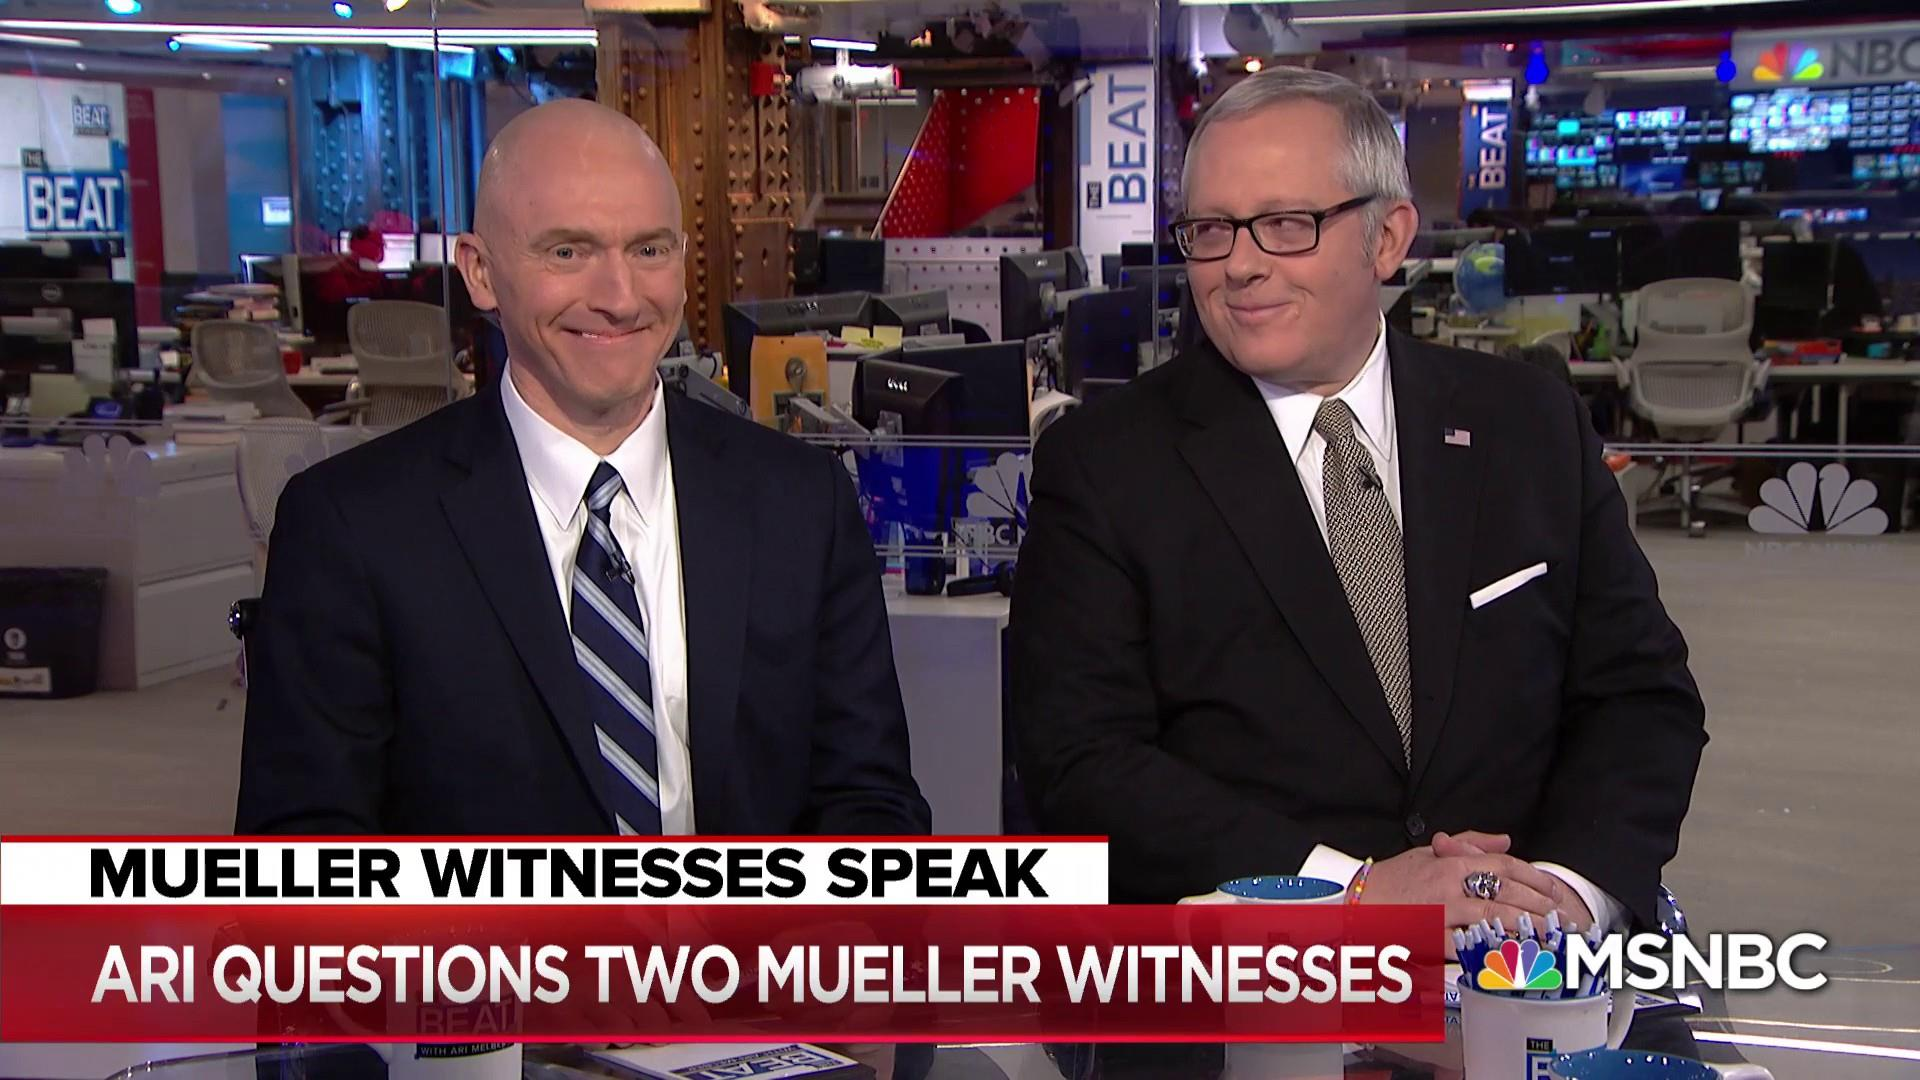 Trump aide who cooperated: 'Bad things' coming in Mueller report